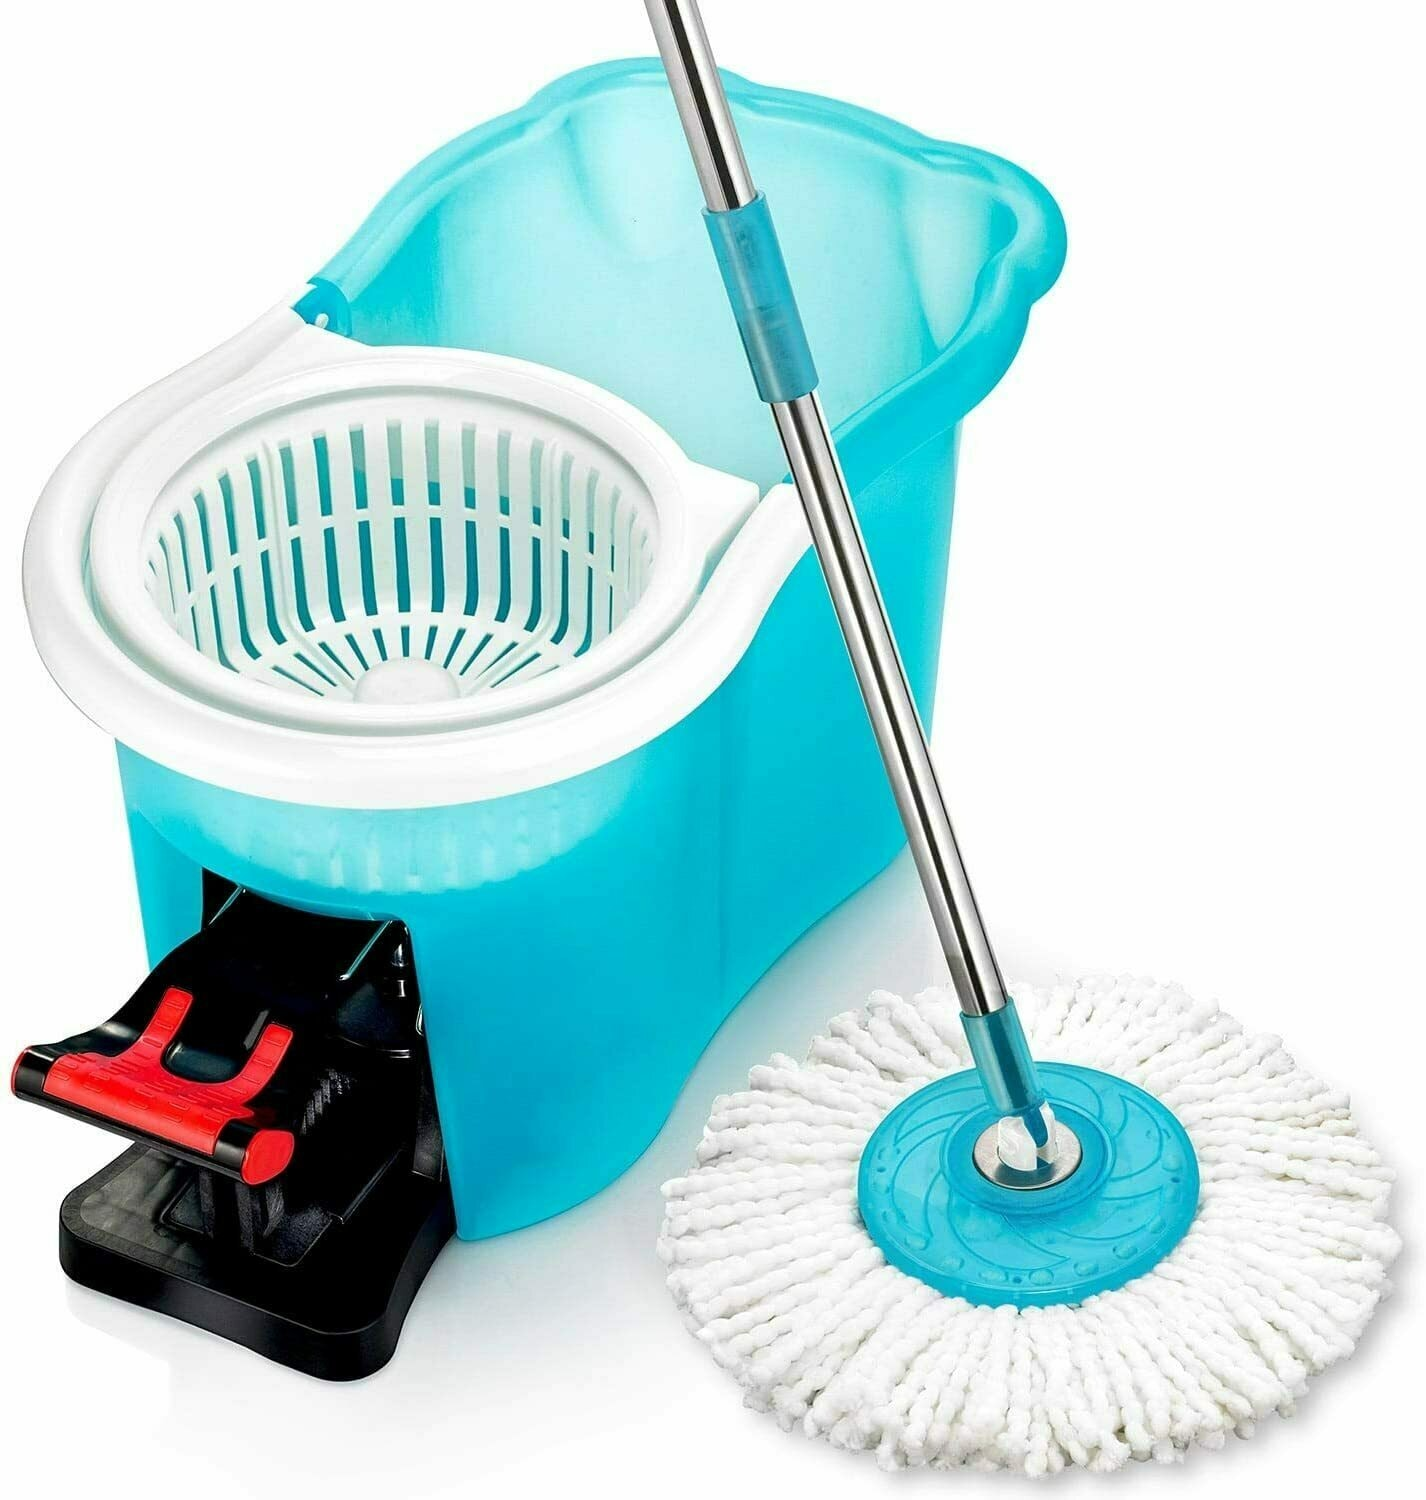 Hurricane Spin Mop Home Cleaning System by Bulbhead